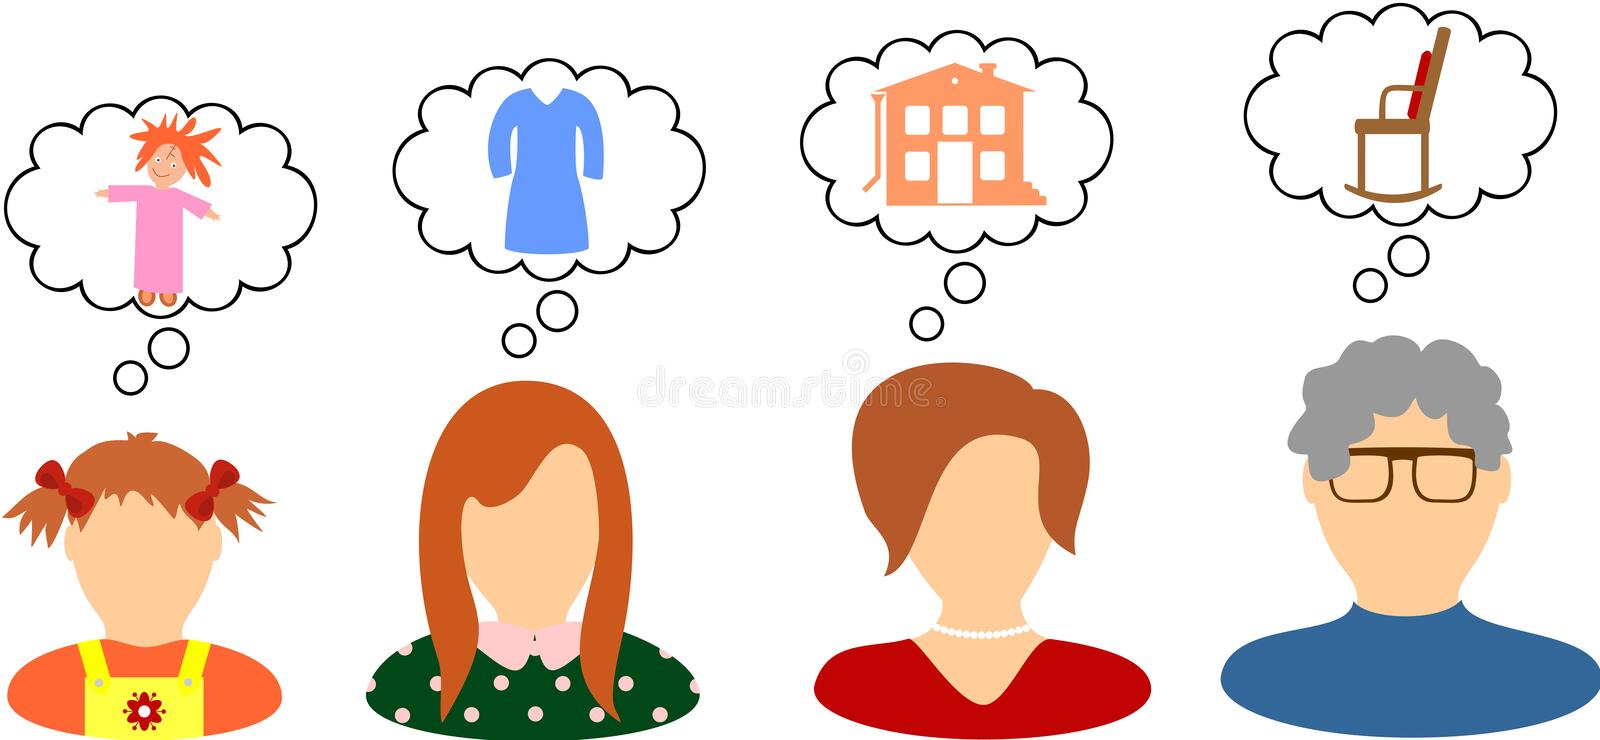 Dreams and desires of women. The dreams and desires of women in different ages royalty free illustration